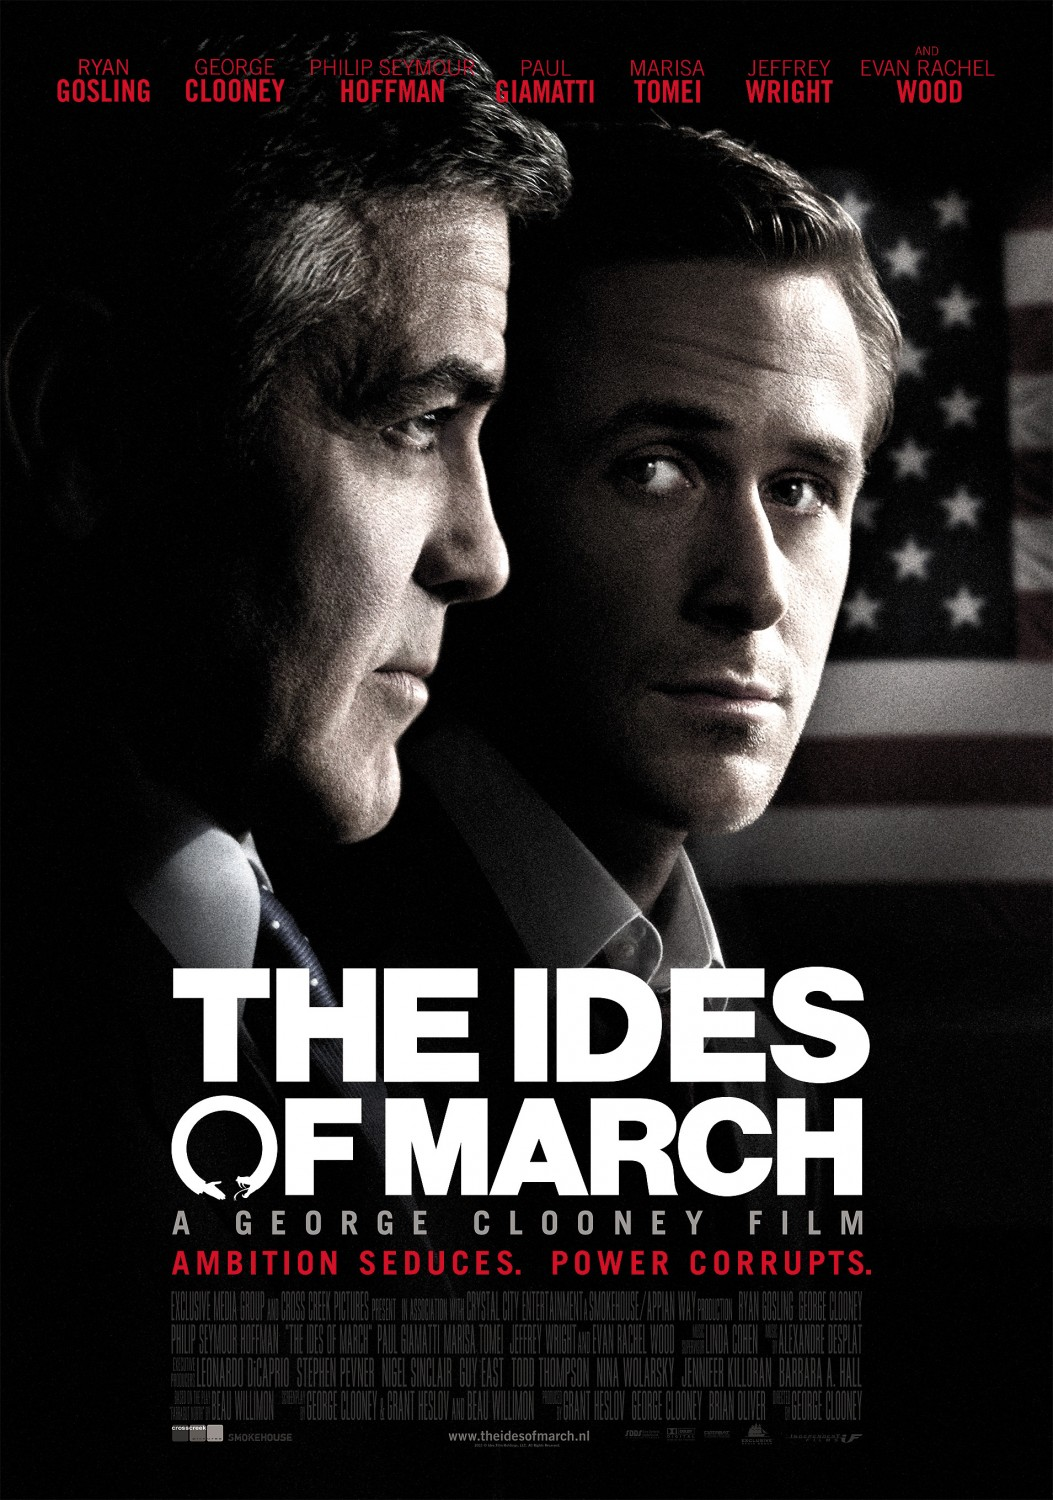 Beware Ides of March